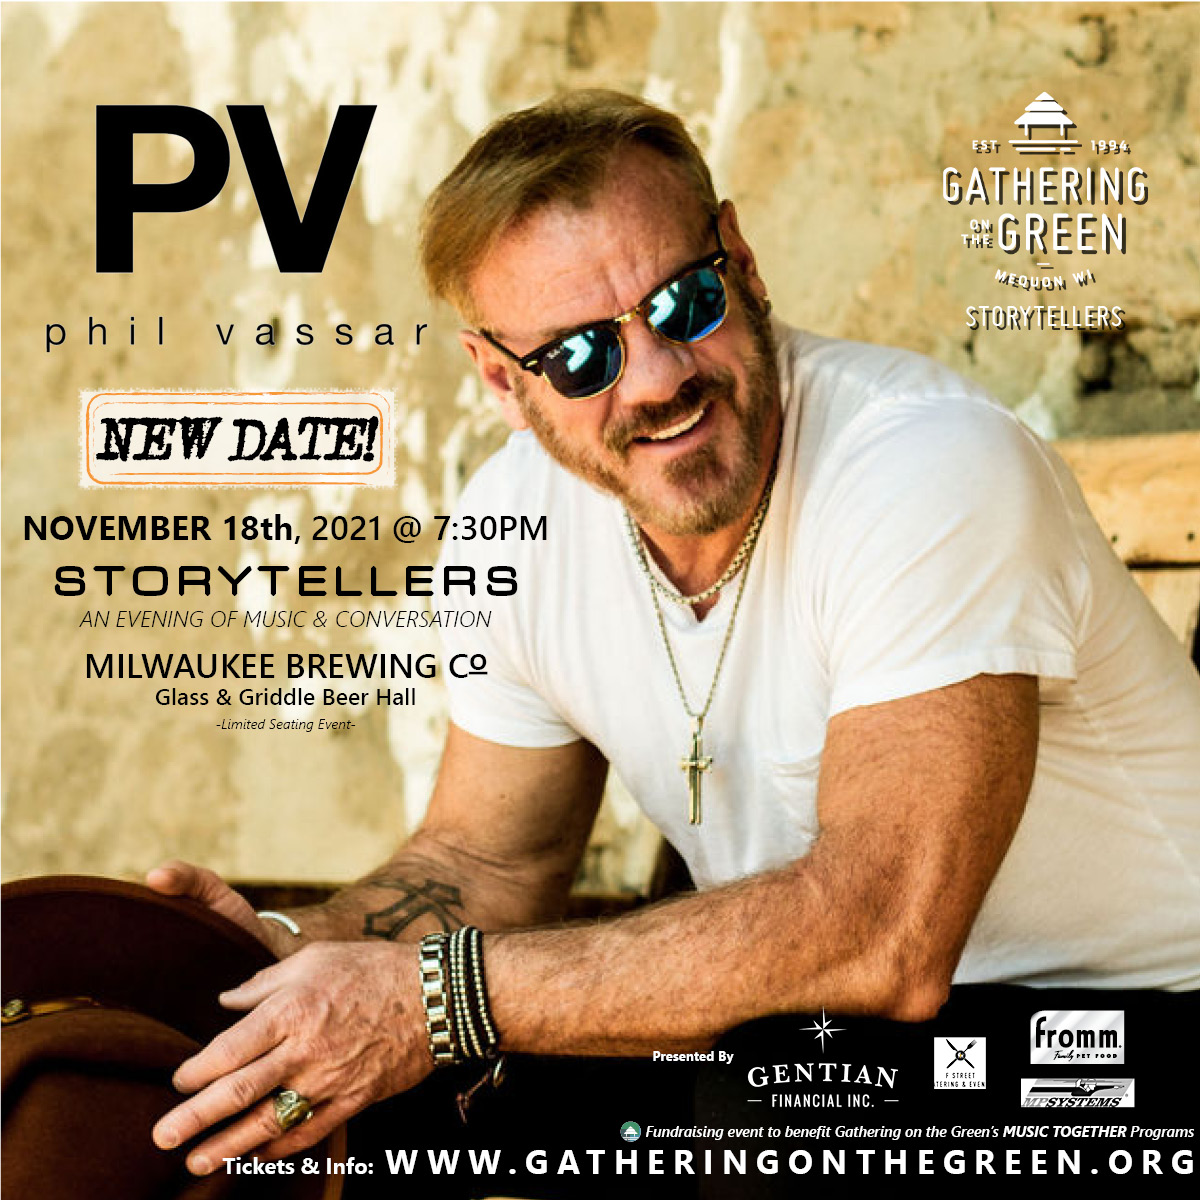 Phil Vassar_4x4_Gathering on the Green_Storytellers_2021_November